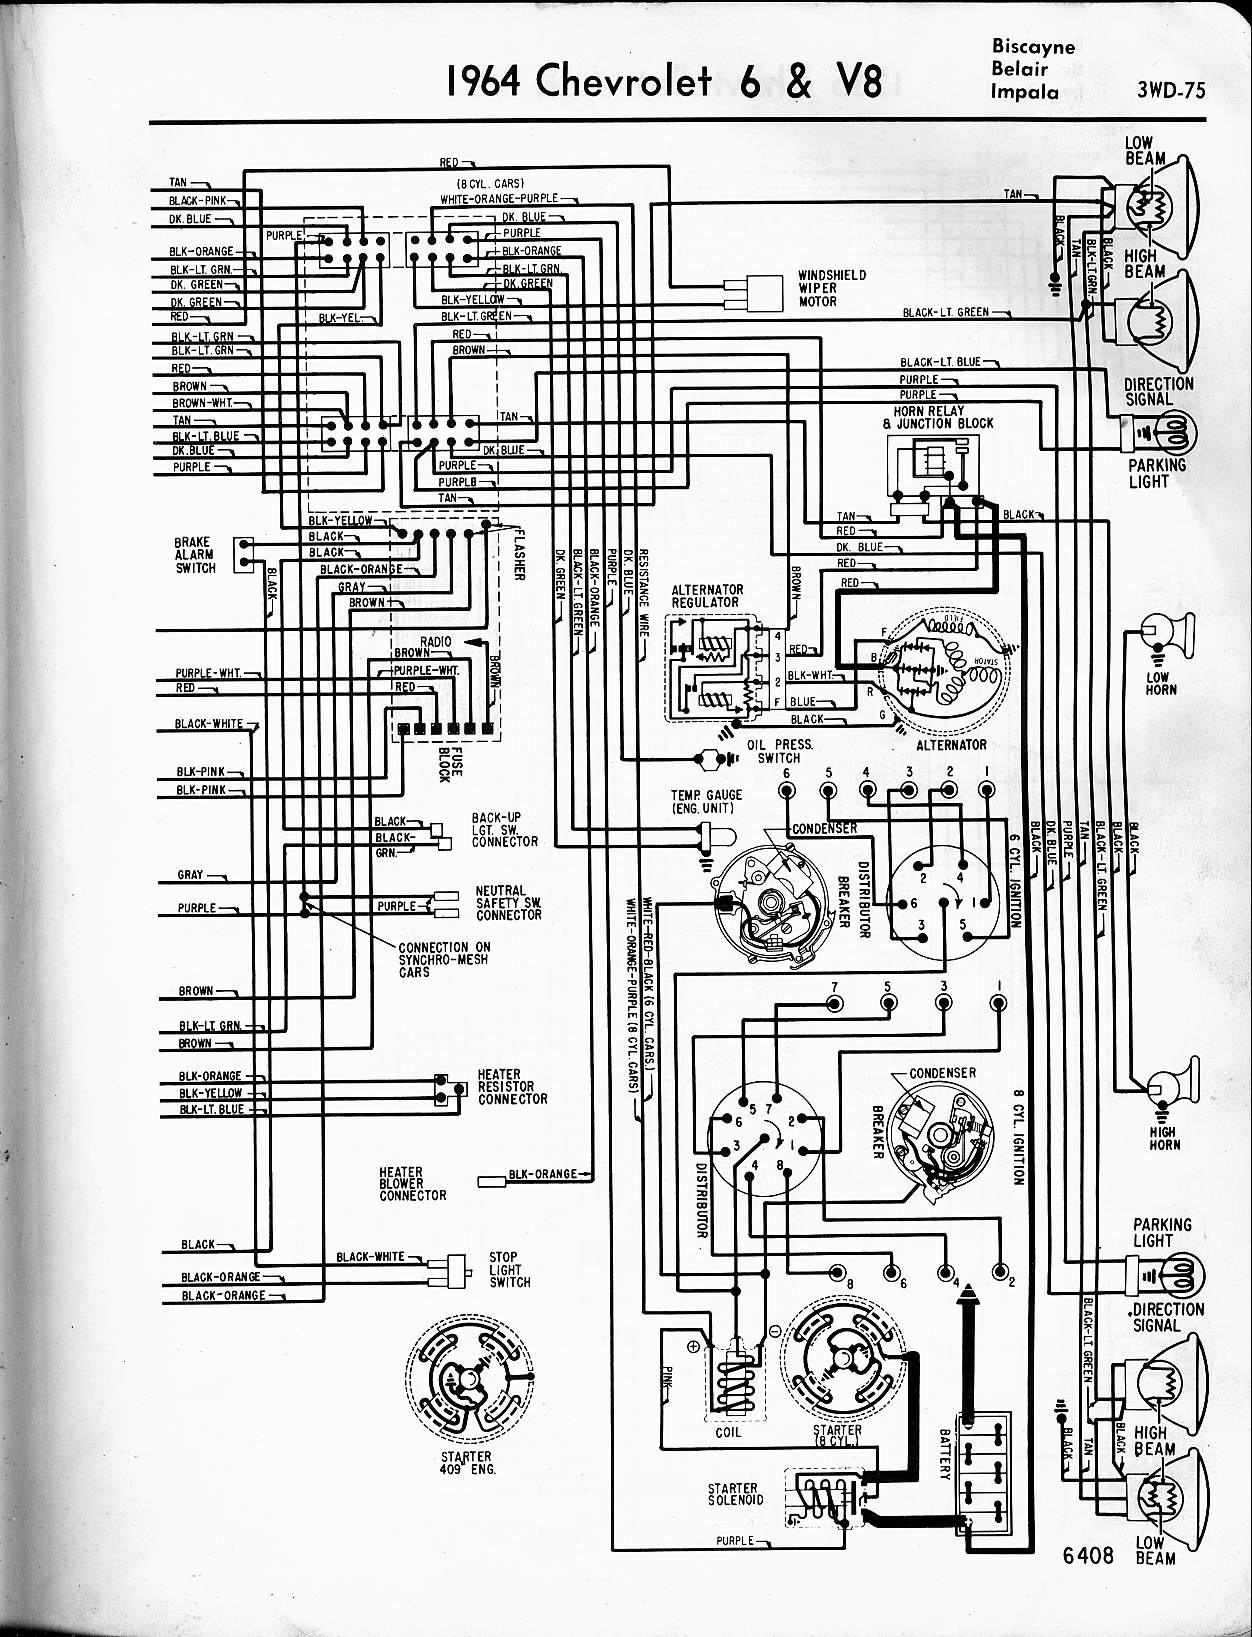 1964 chevy c10 wiring diagram wiring diagram article 1965 Chevy Corvair Wiring-Diagram